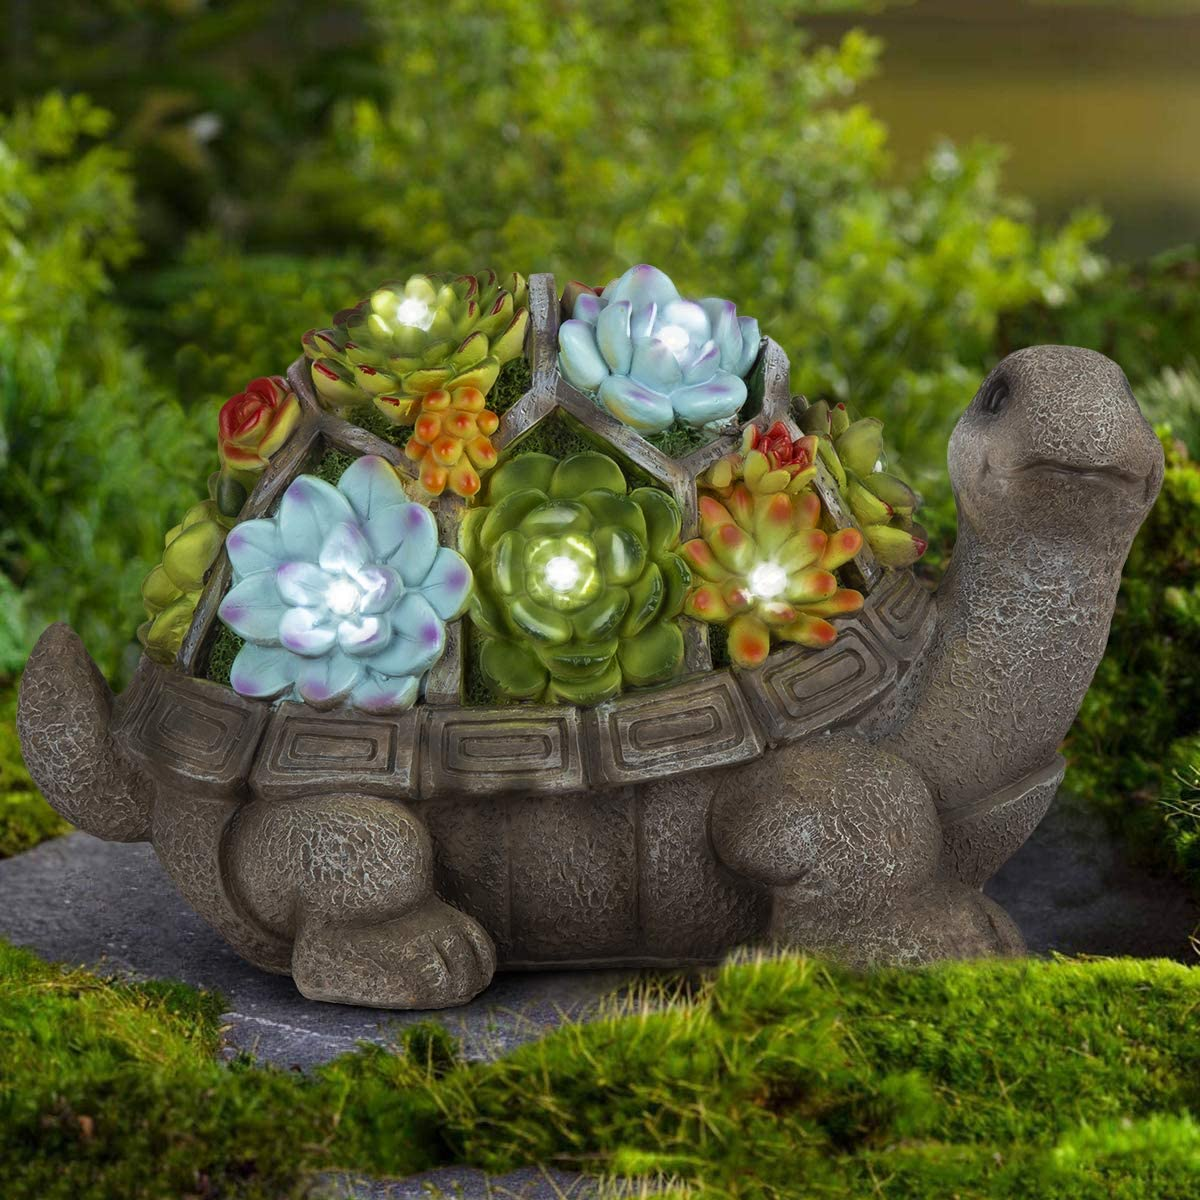 GIGALUMI Turtle Garden Figurines Outdoor Decor, Garden Art Outdoor for Fall  Winter Garden Decor,Outdoor Solar Statue with 9 LEDs for Patio,Lawn,Yard